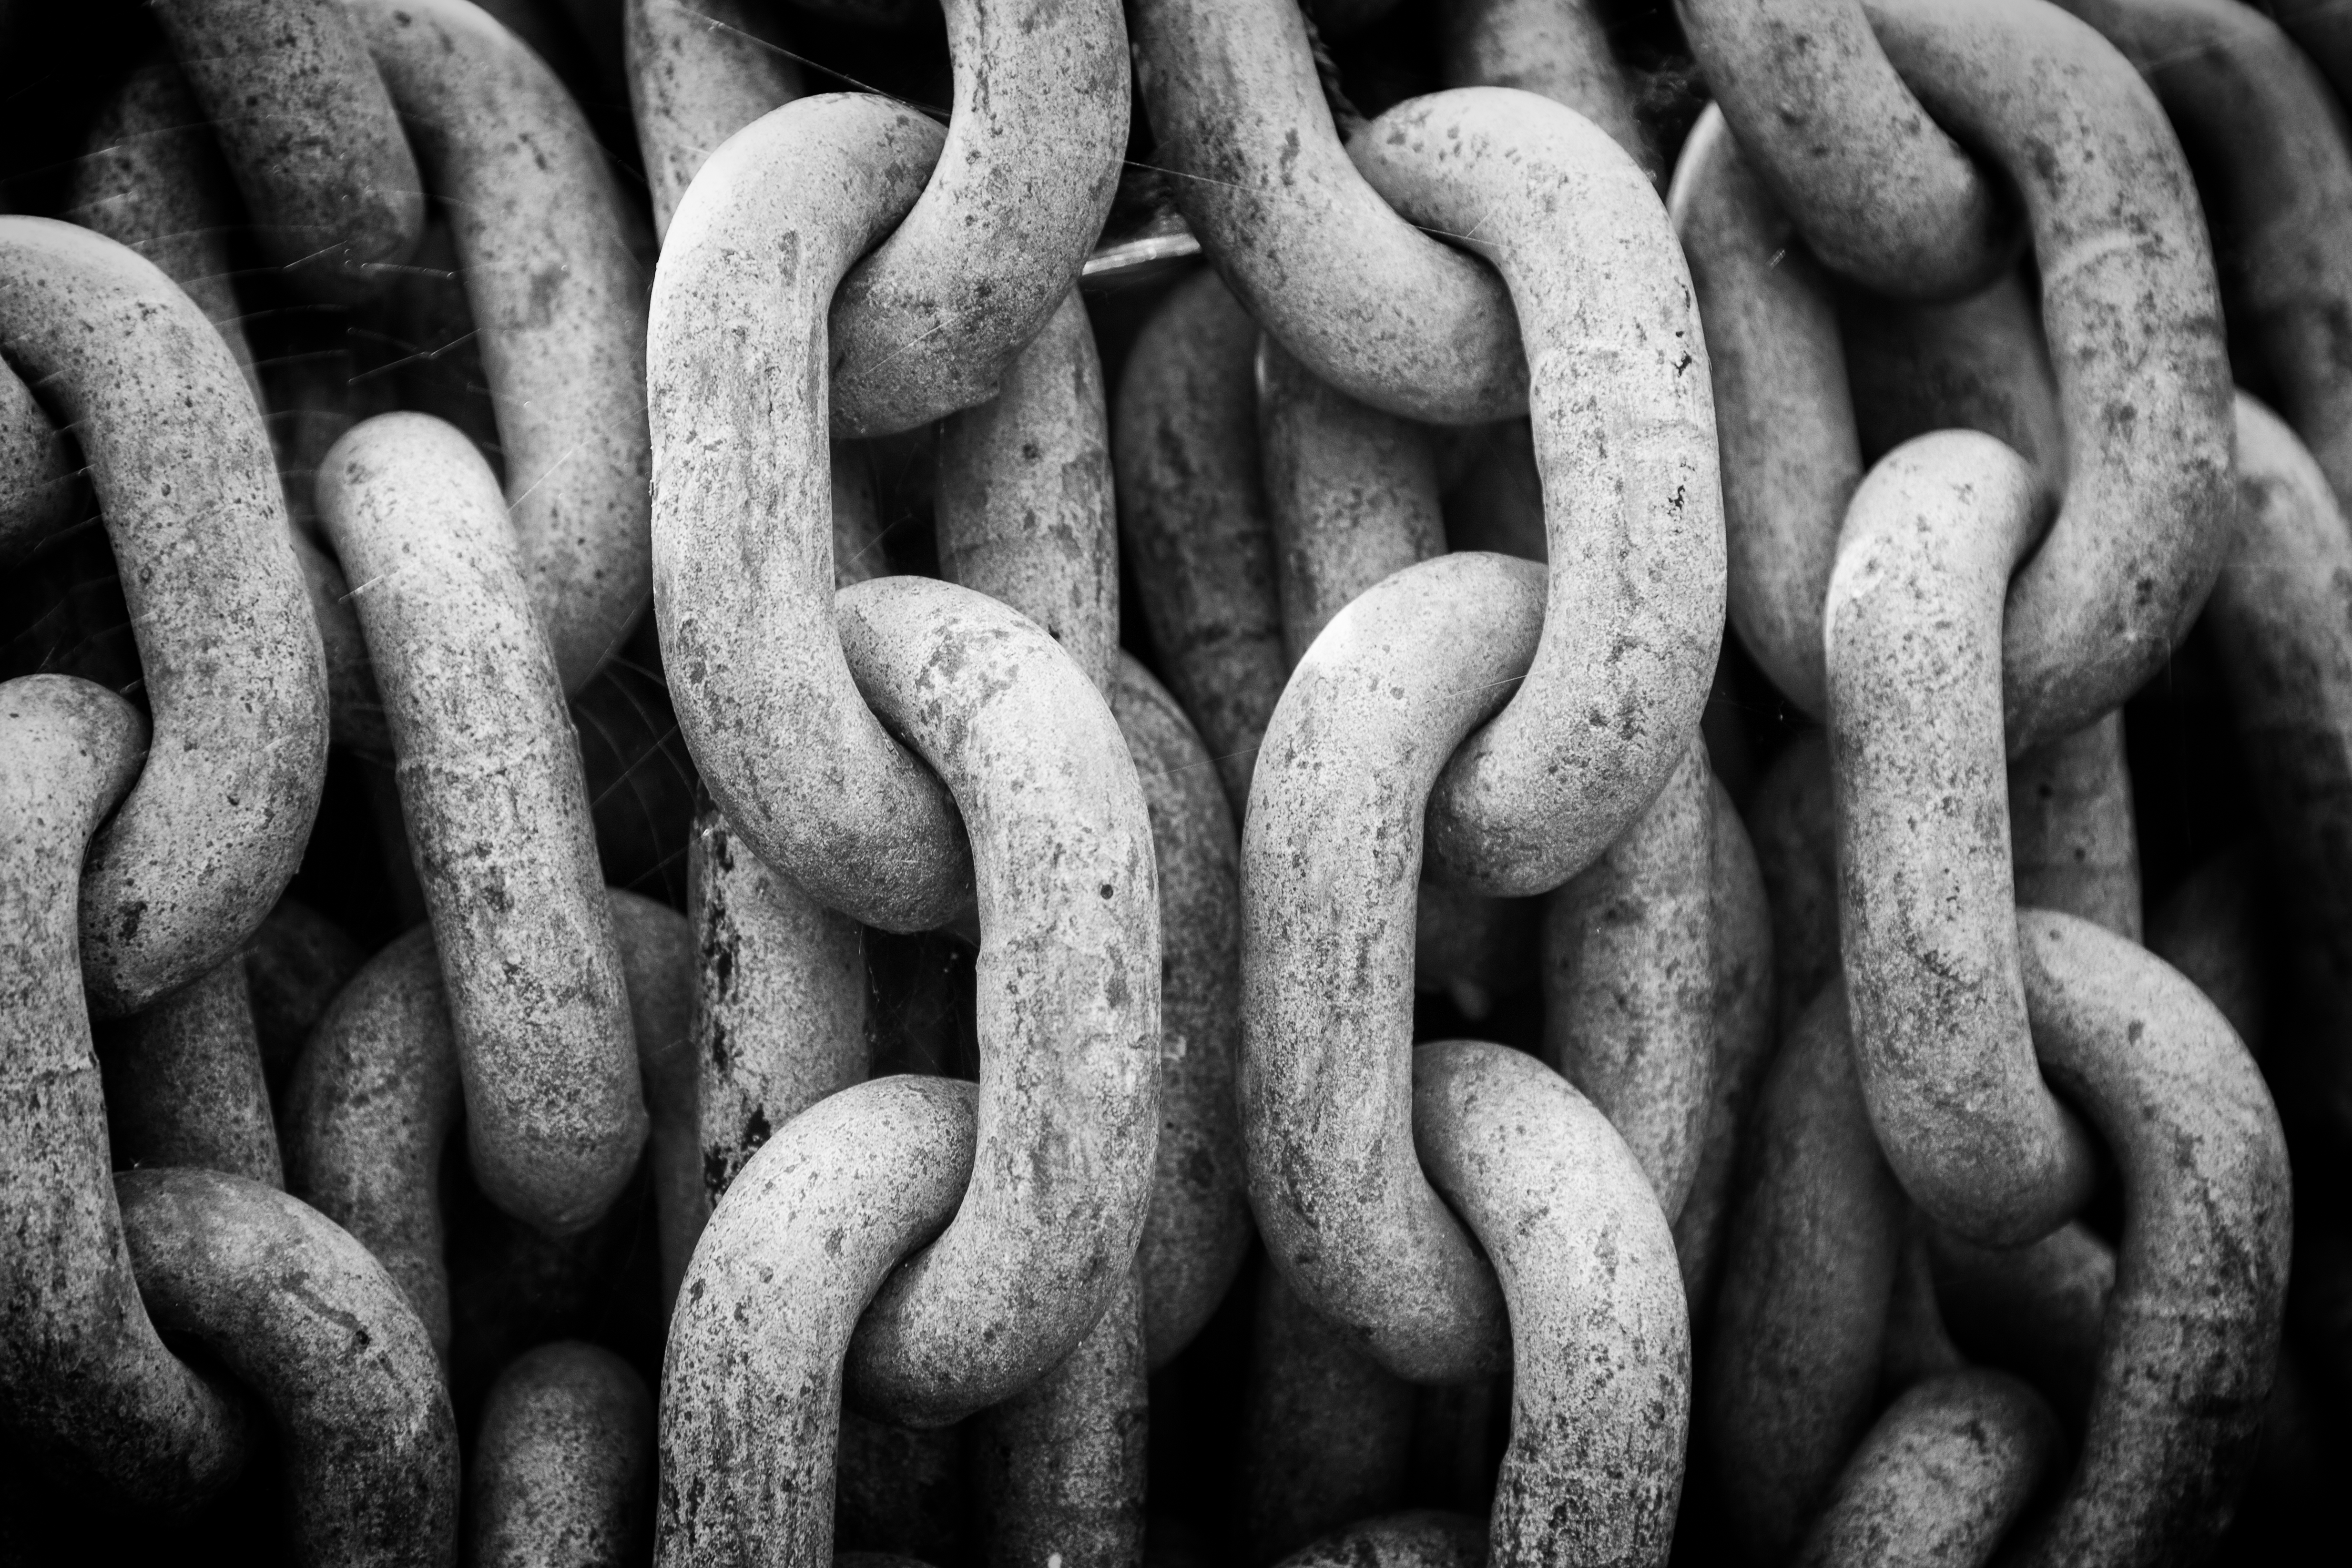 Question of the Day: Chains.